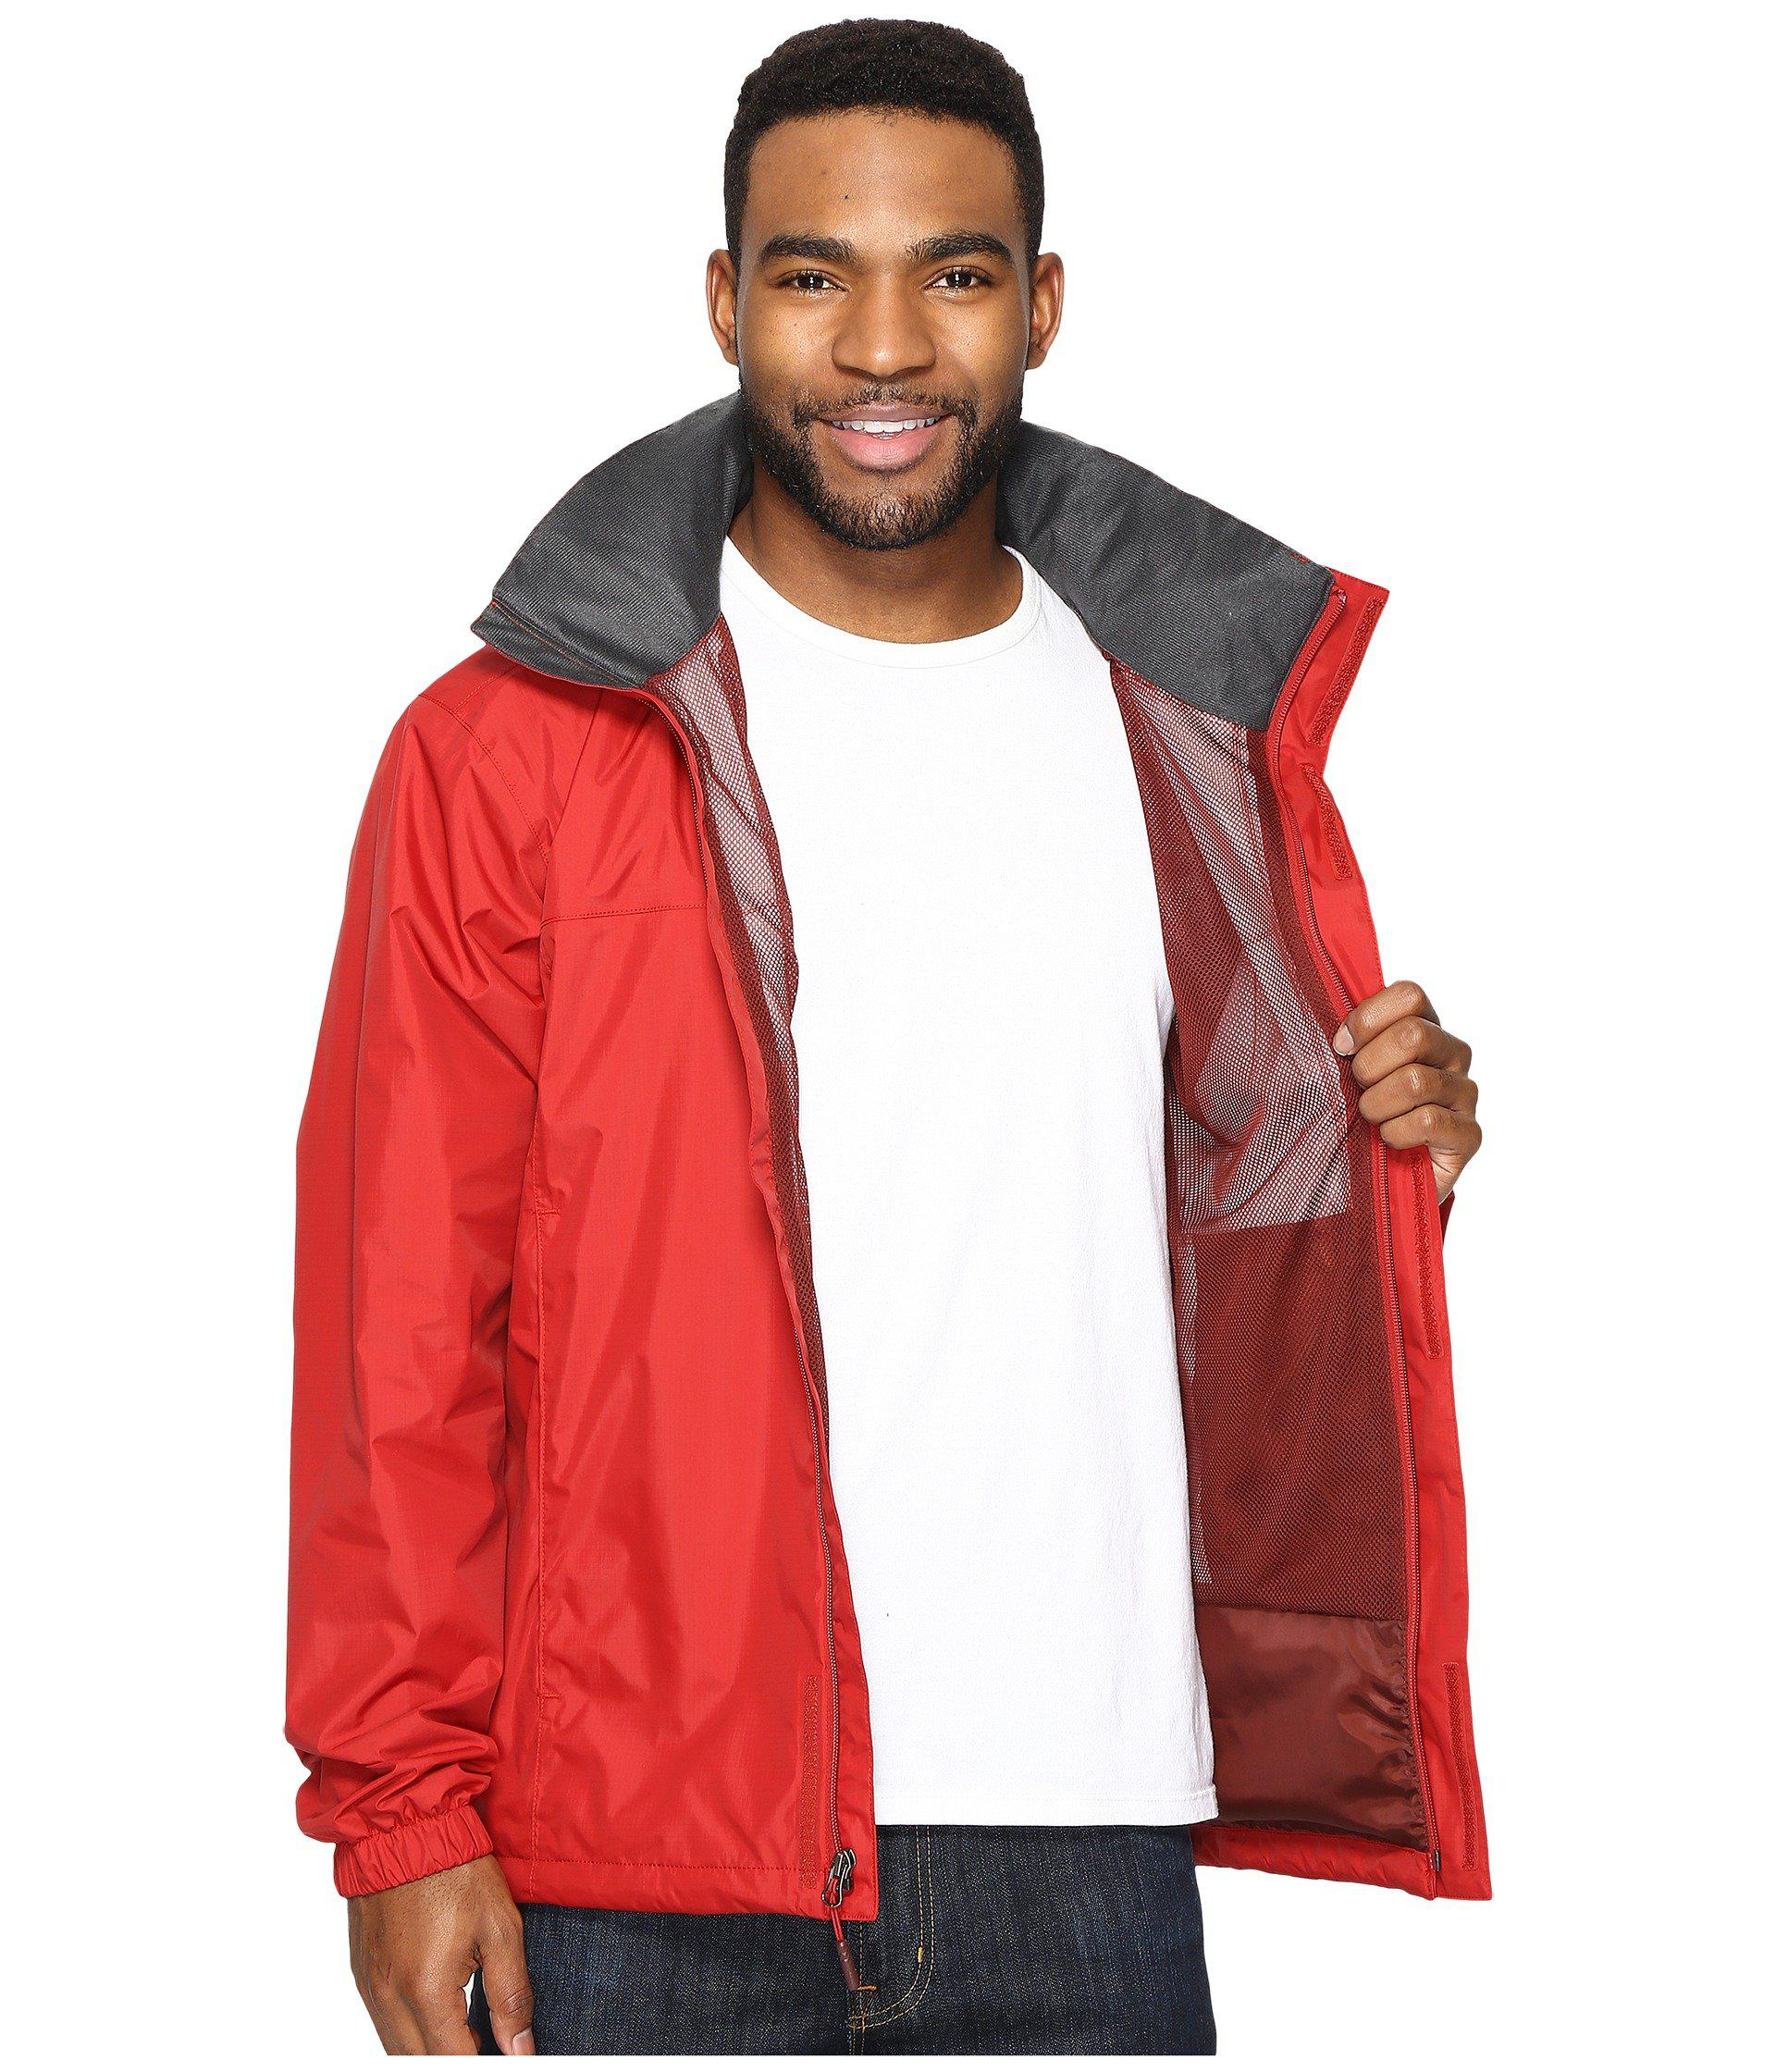 675a68a9b The North Face Red Resolve 2 Jacket for men